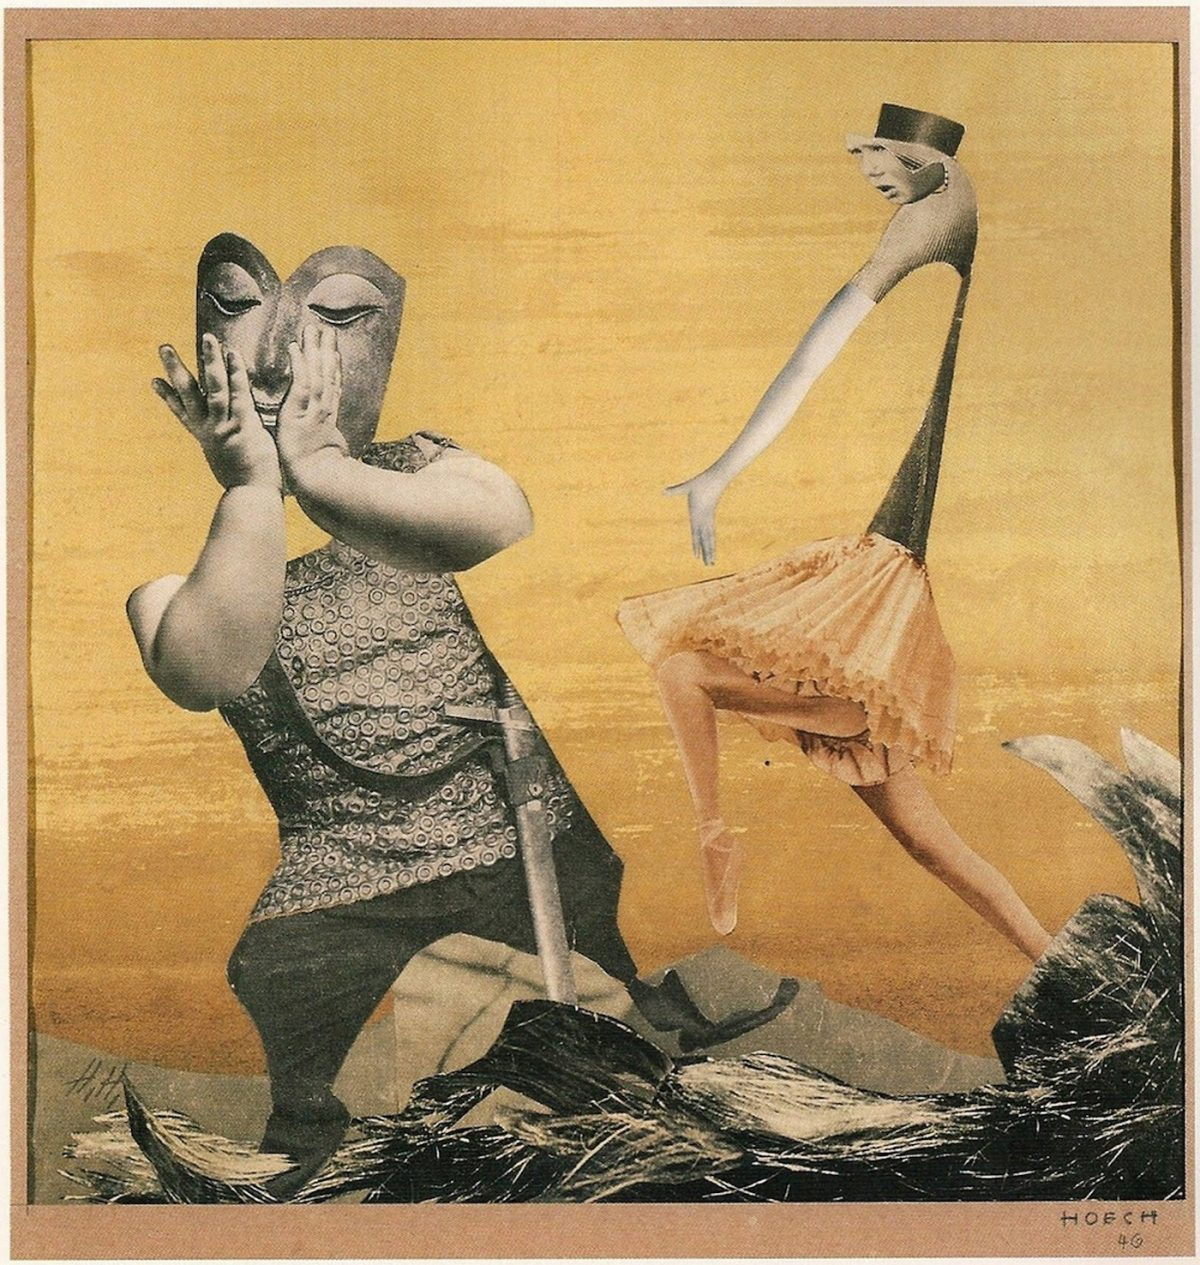 Hannah Höch, DADA, collage, art